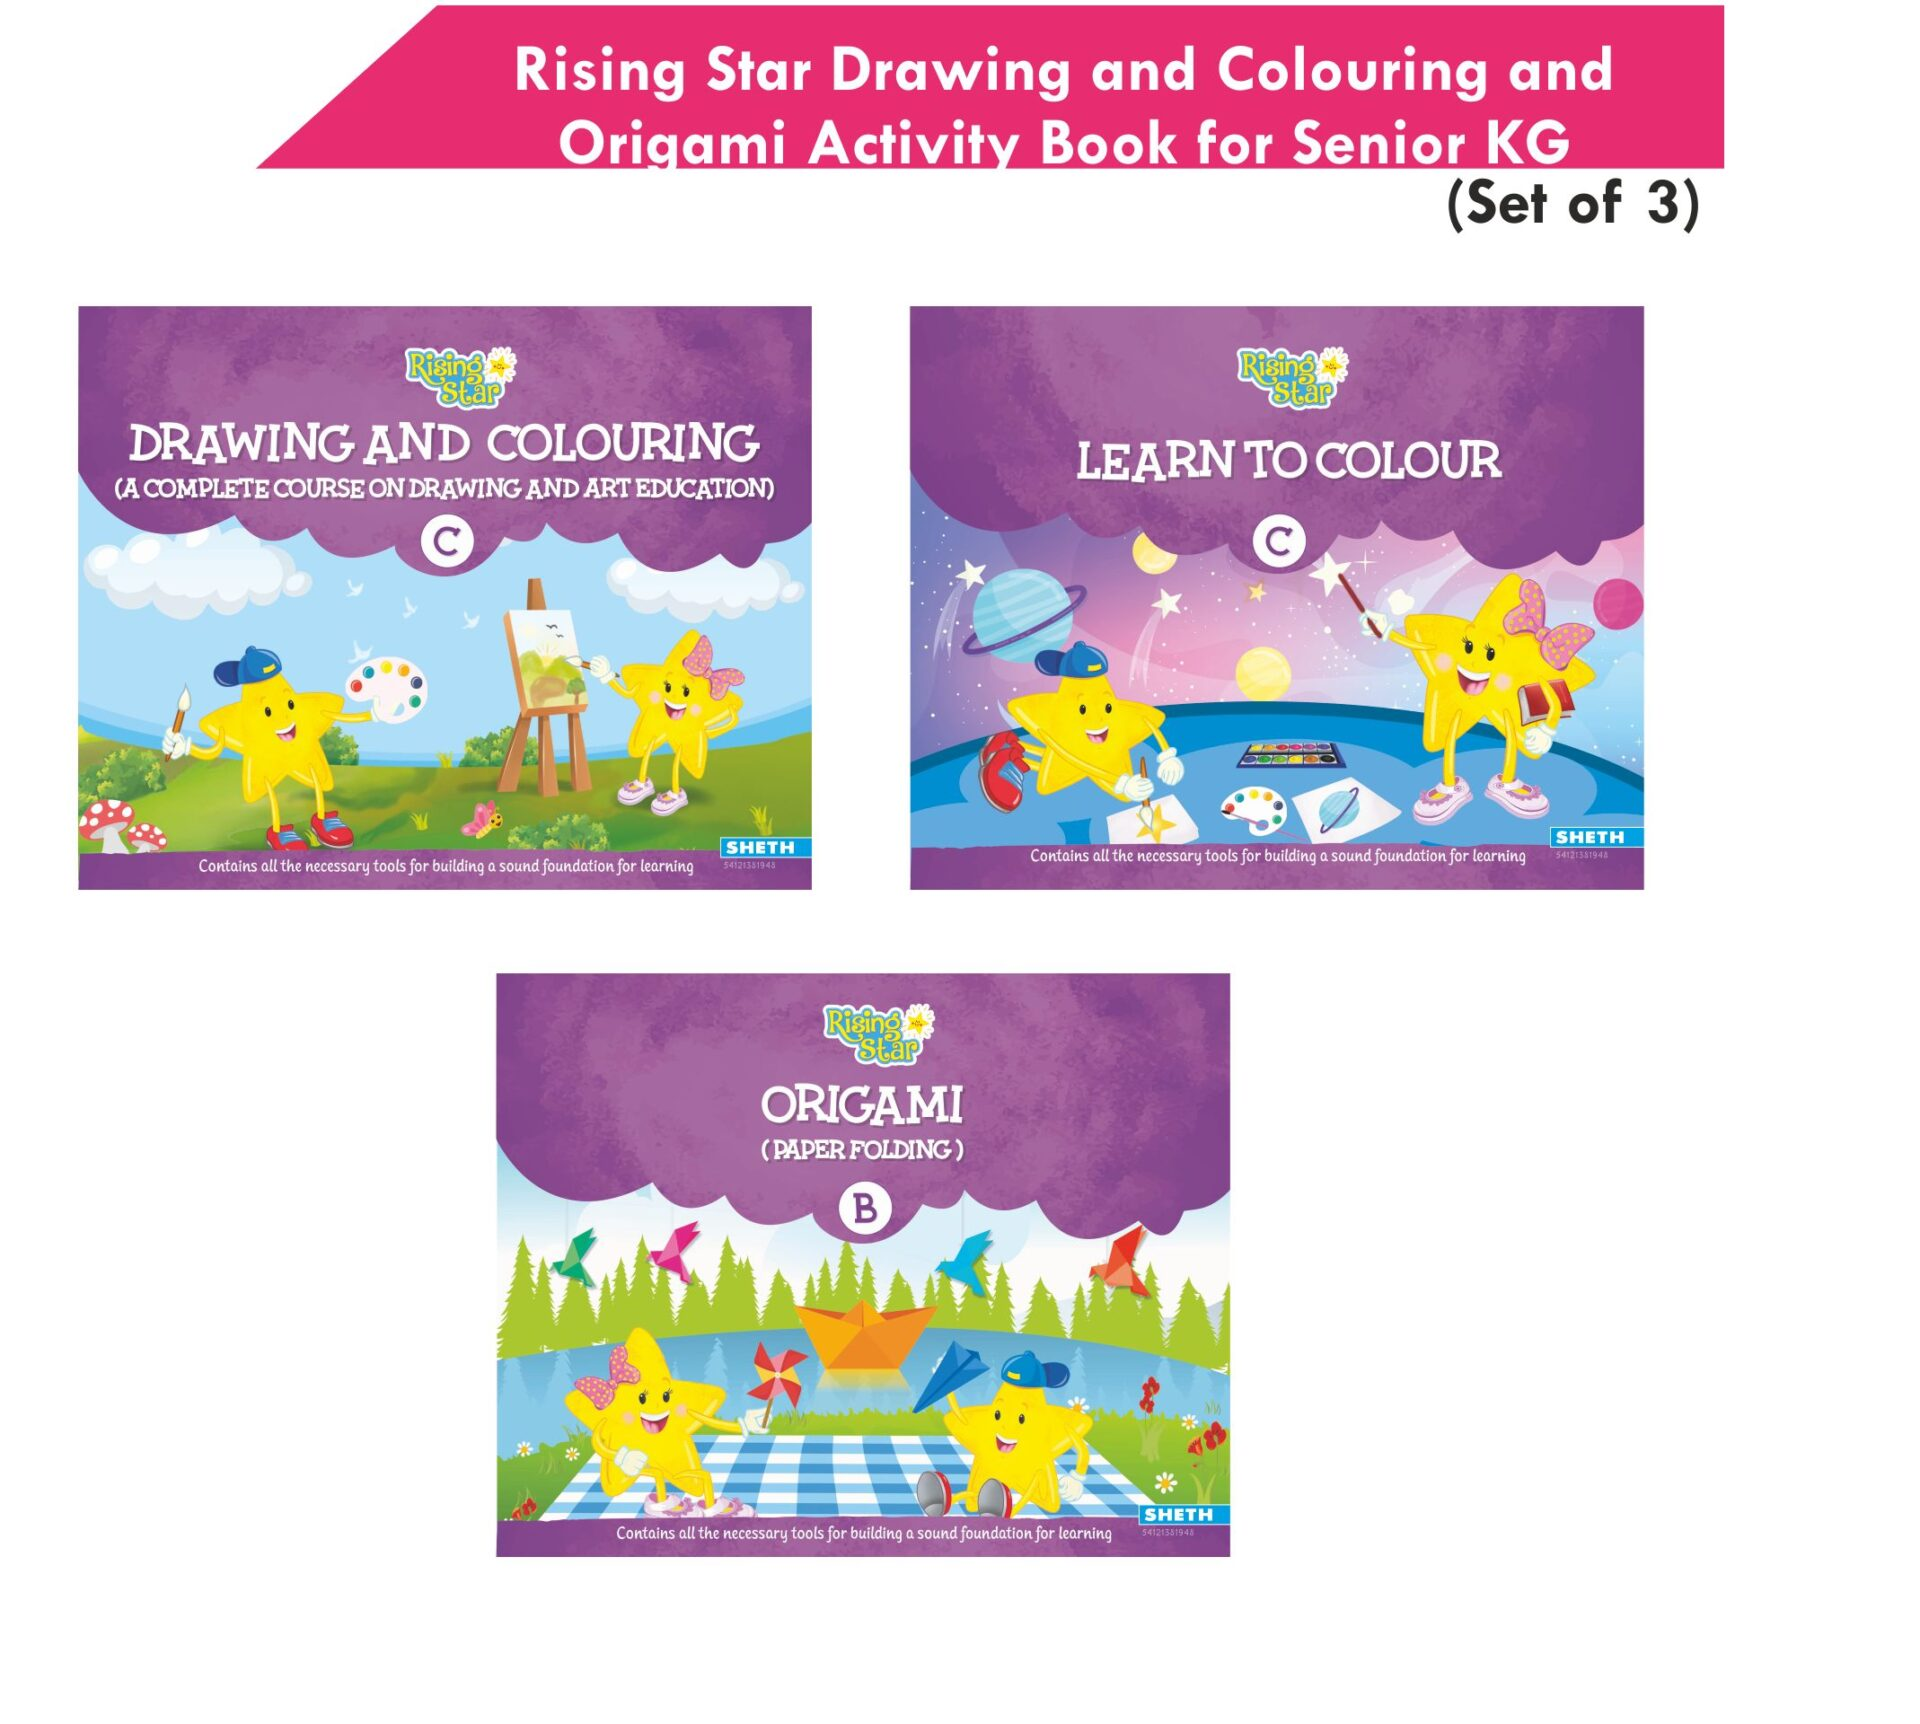 Rising Star Drawing and Colouring and Origami Activity Book for Senior KG Set of 3 1